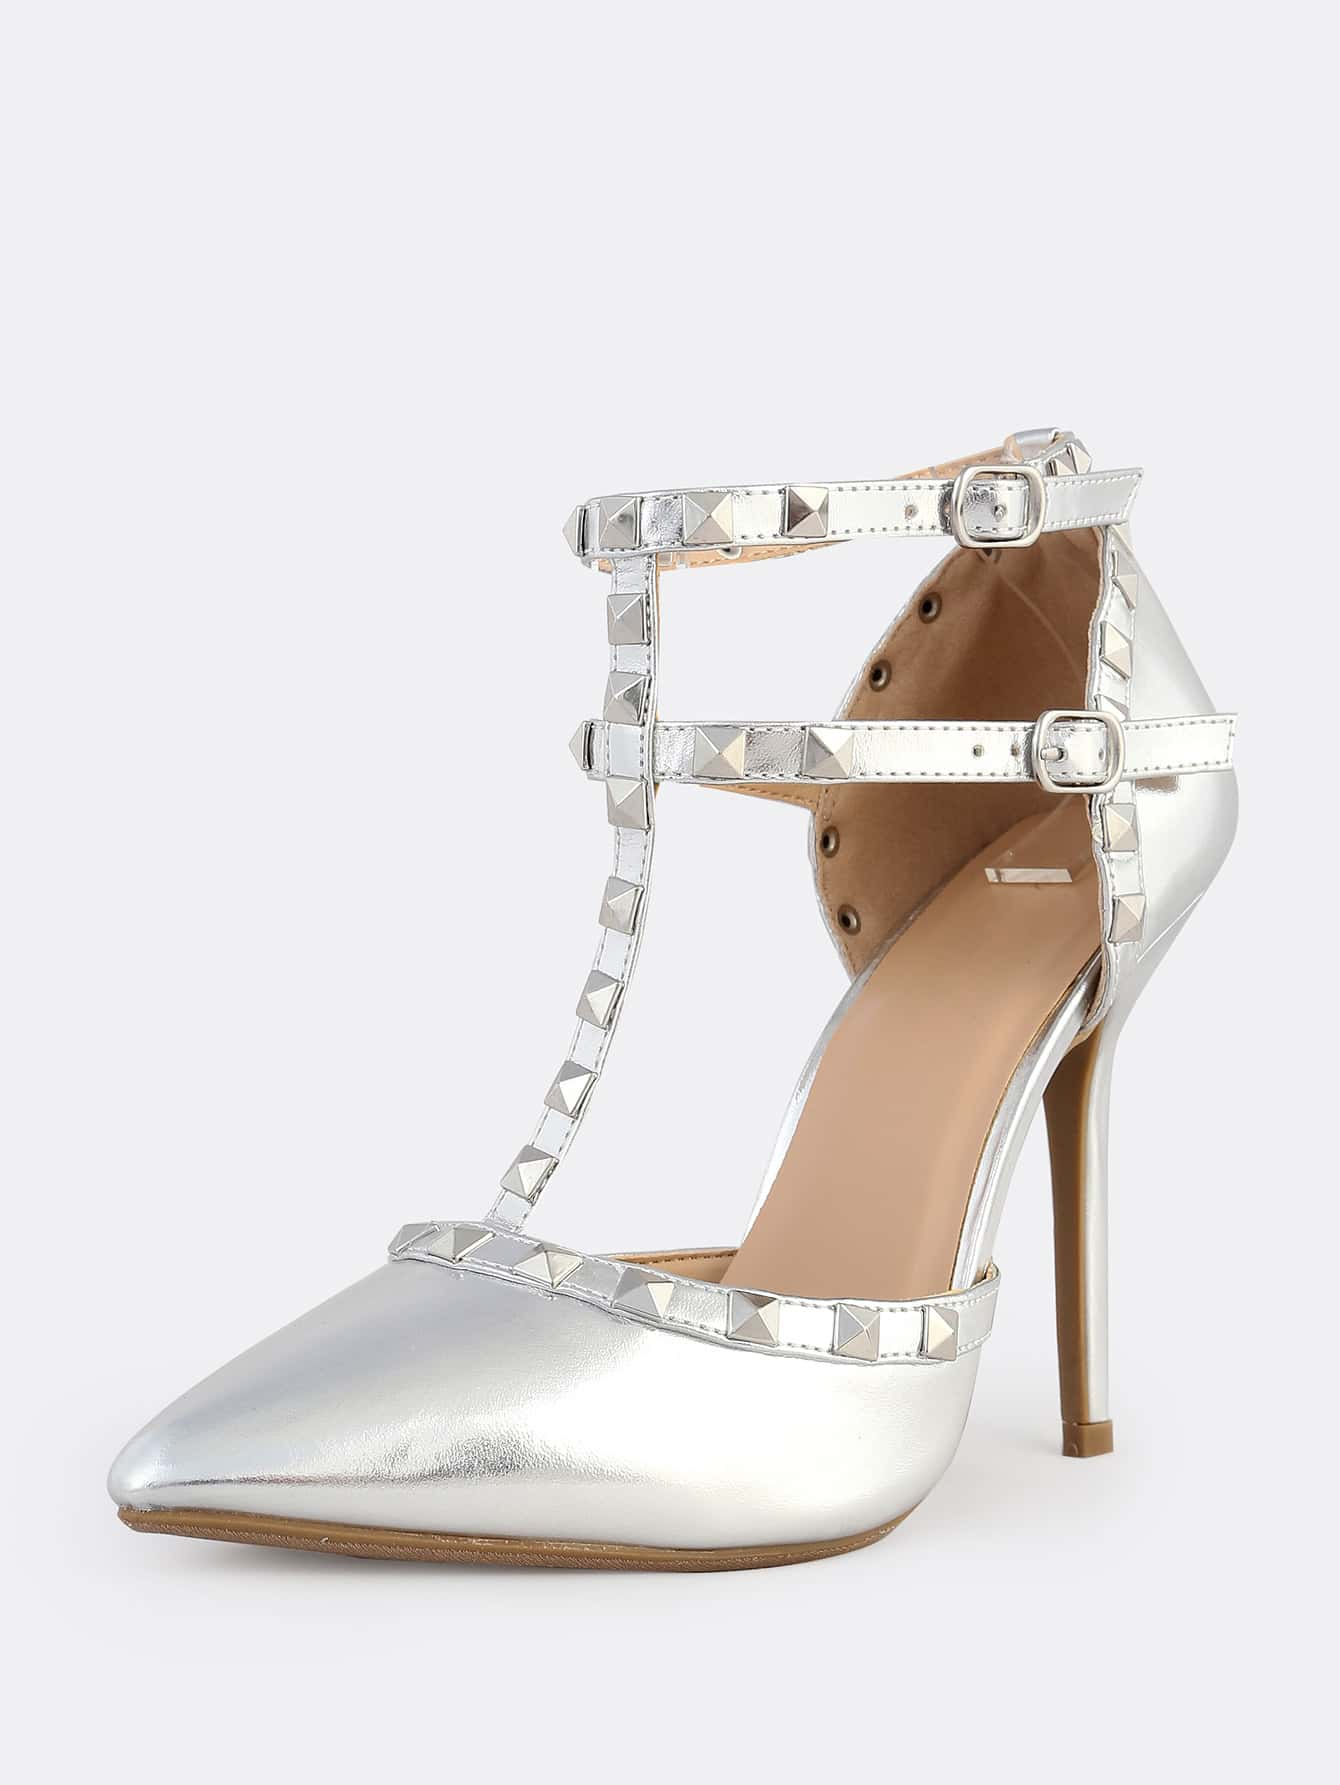 high heel shoe chair value city round glass and wood dining table chairs metallic stud closed toe pumps silver shein sheinside